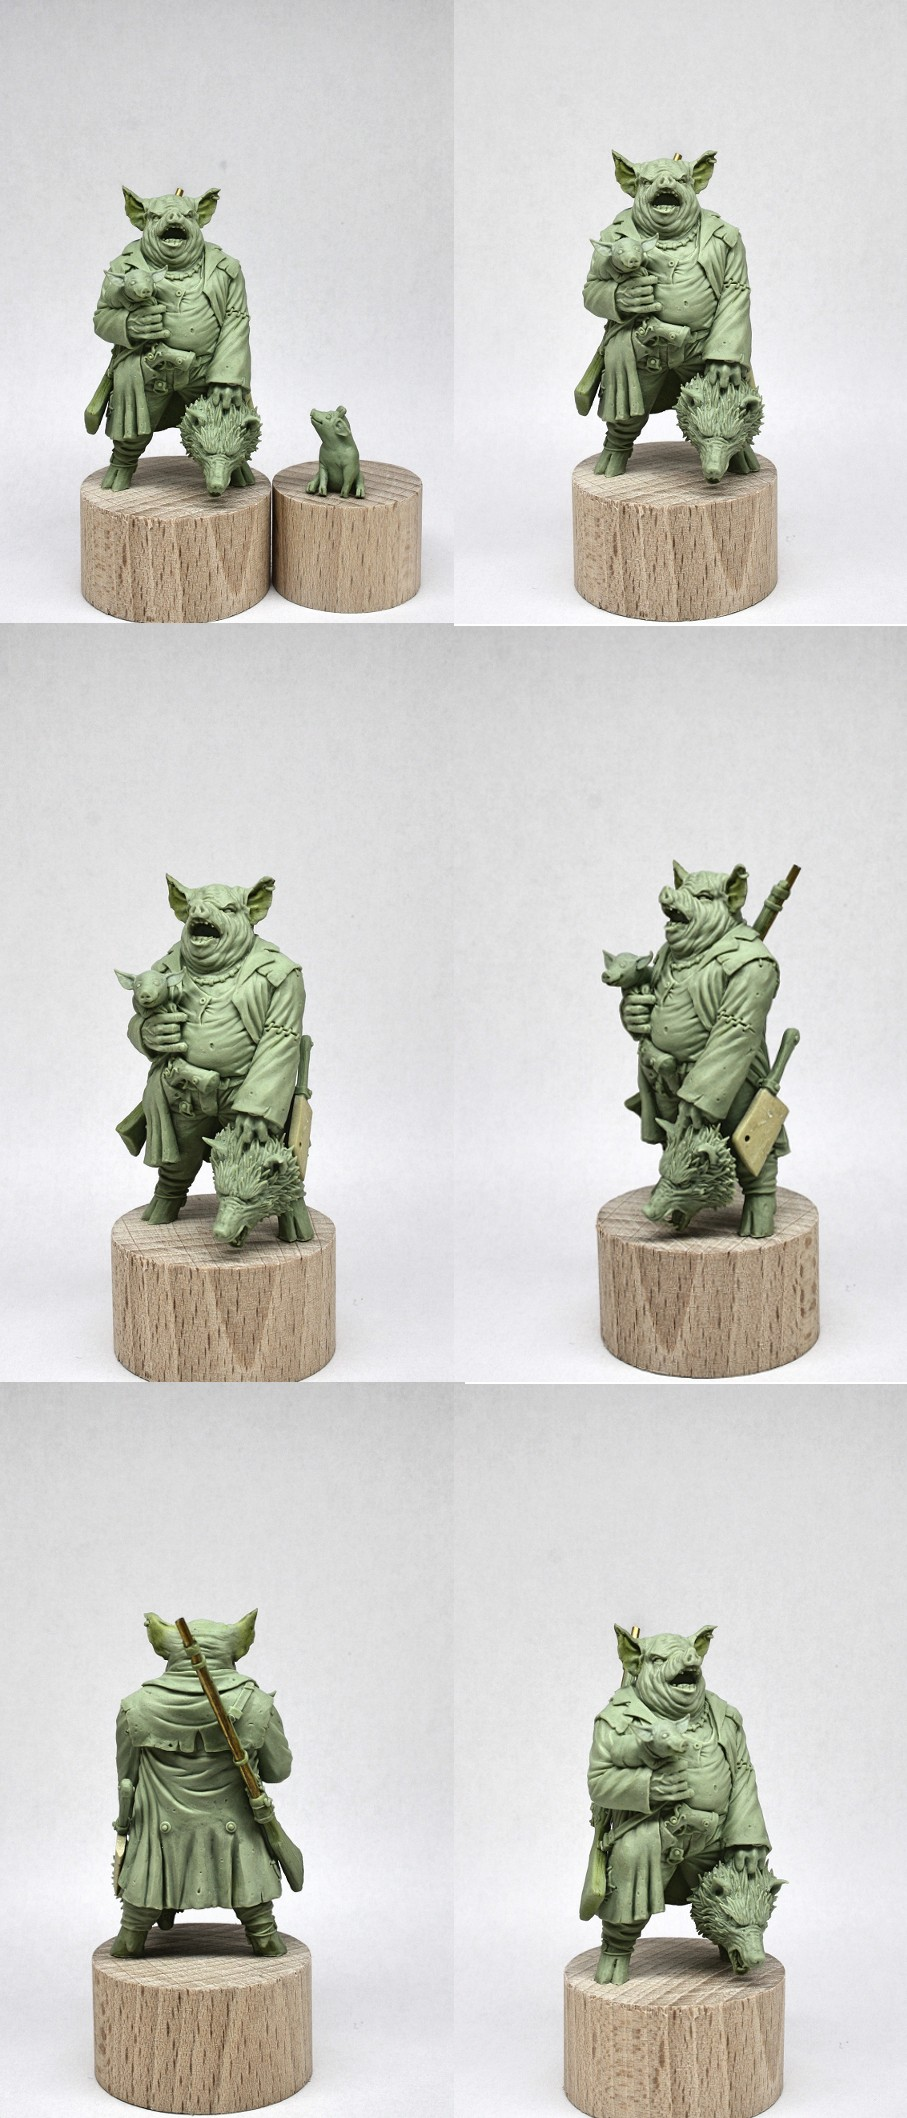 GHERAR THE PIG (54mm)